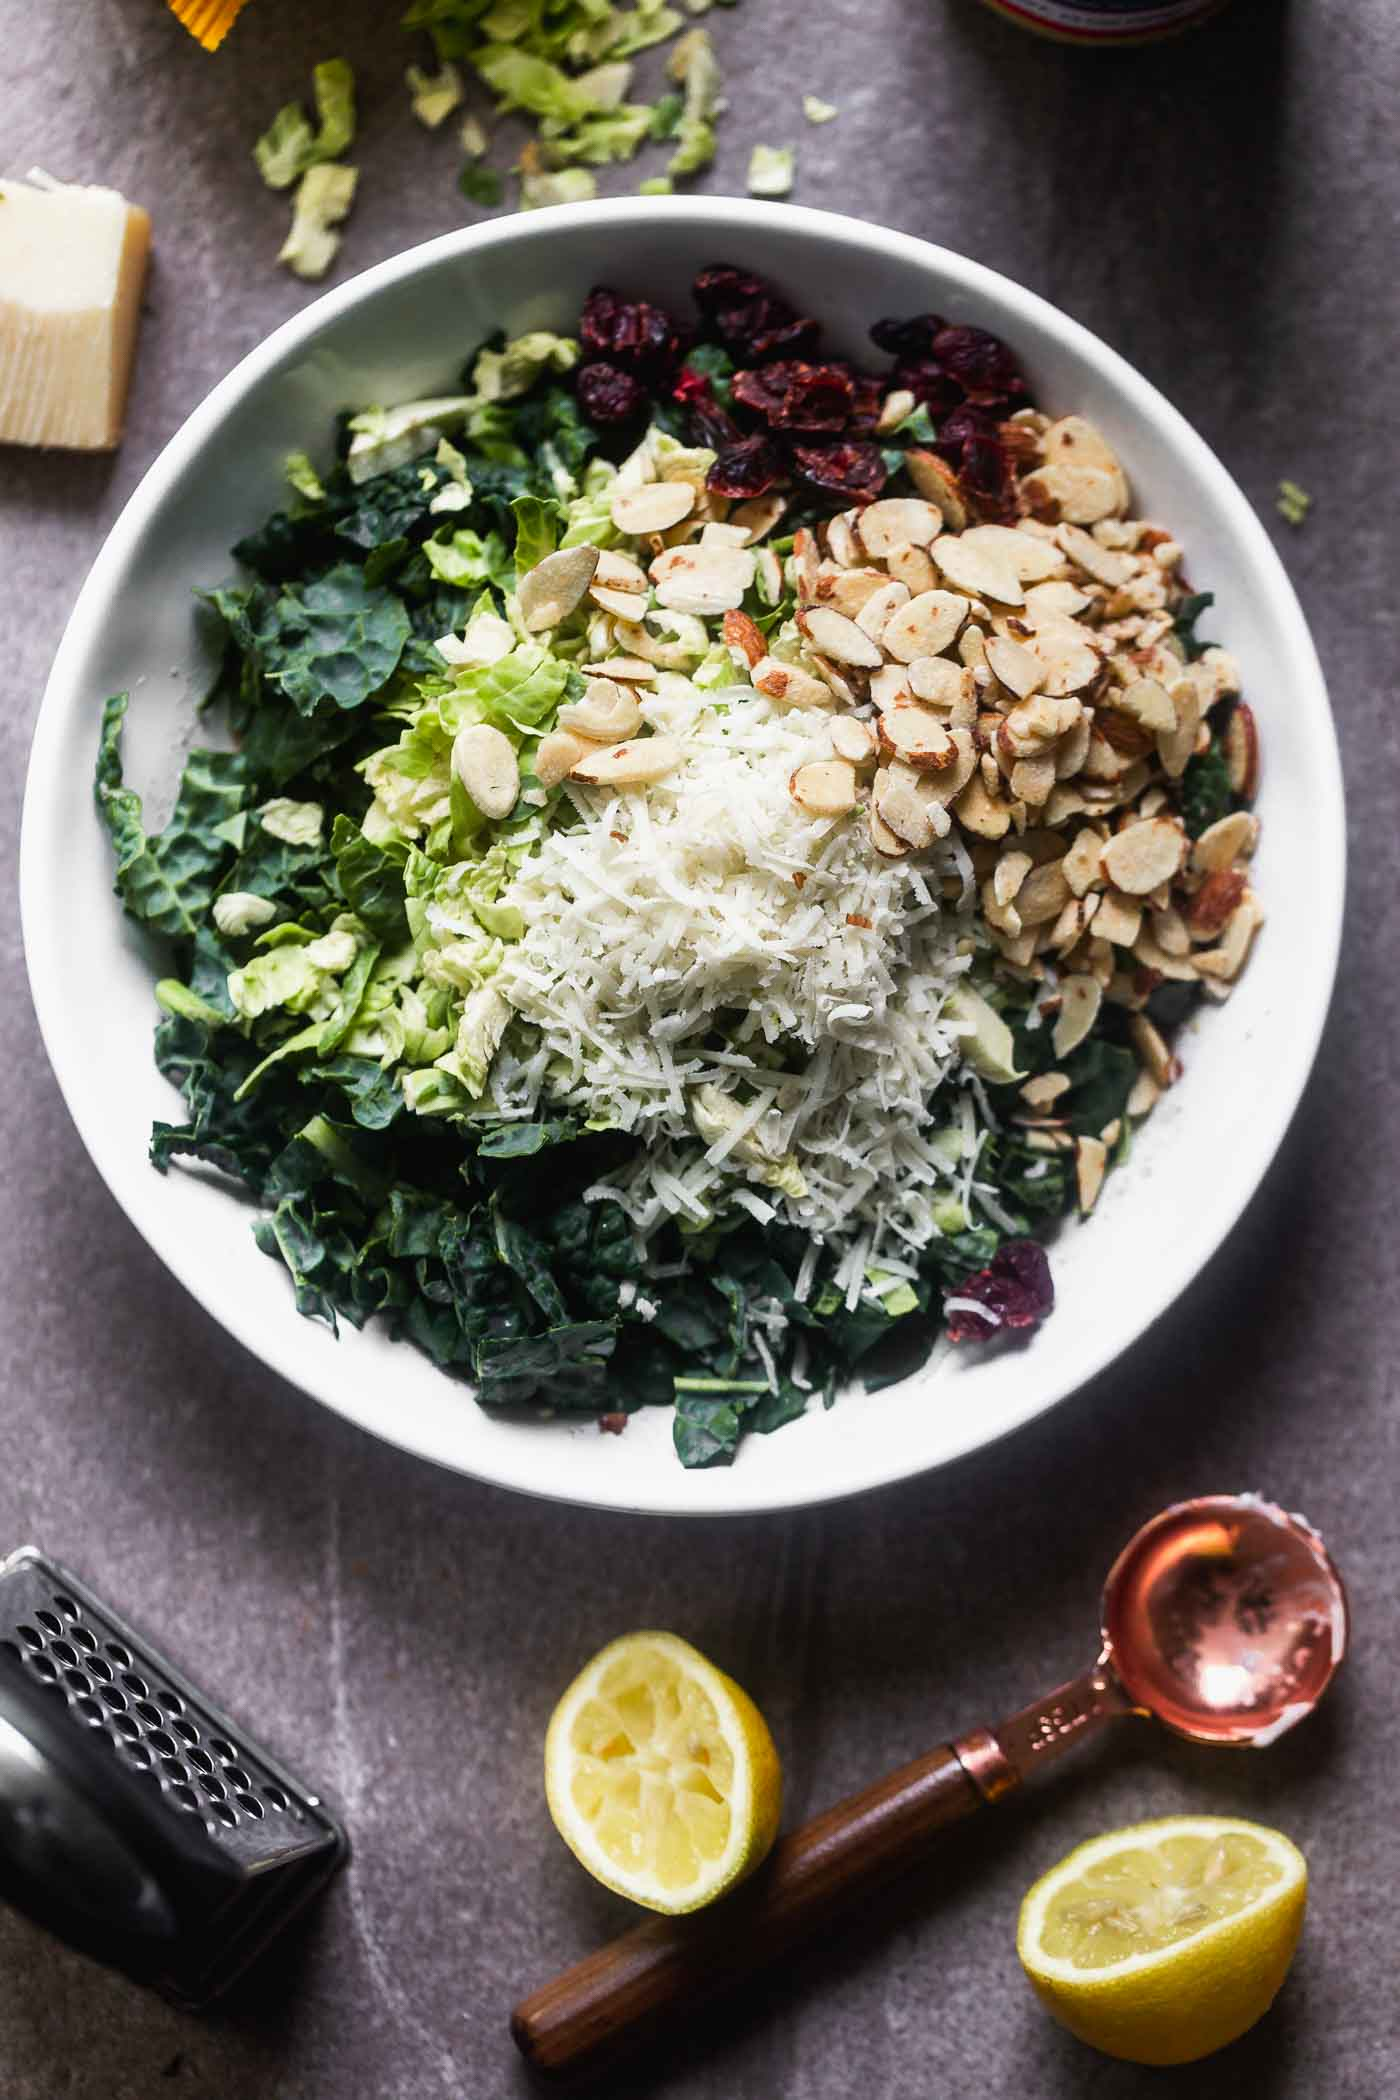 Everyday Kale and Brussels Sprout Salad